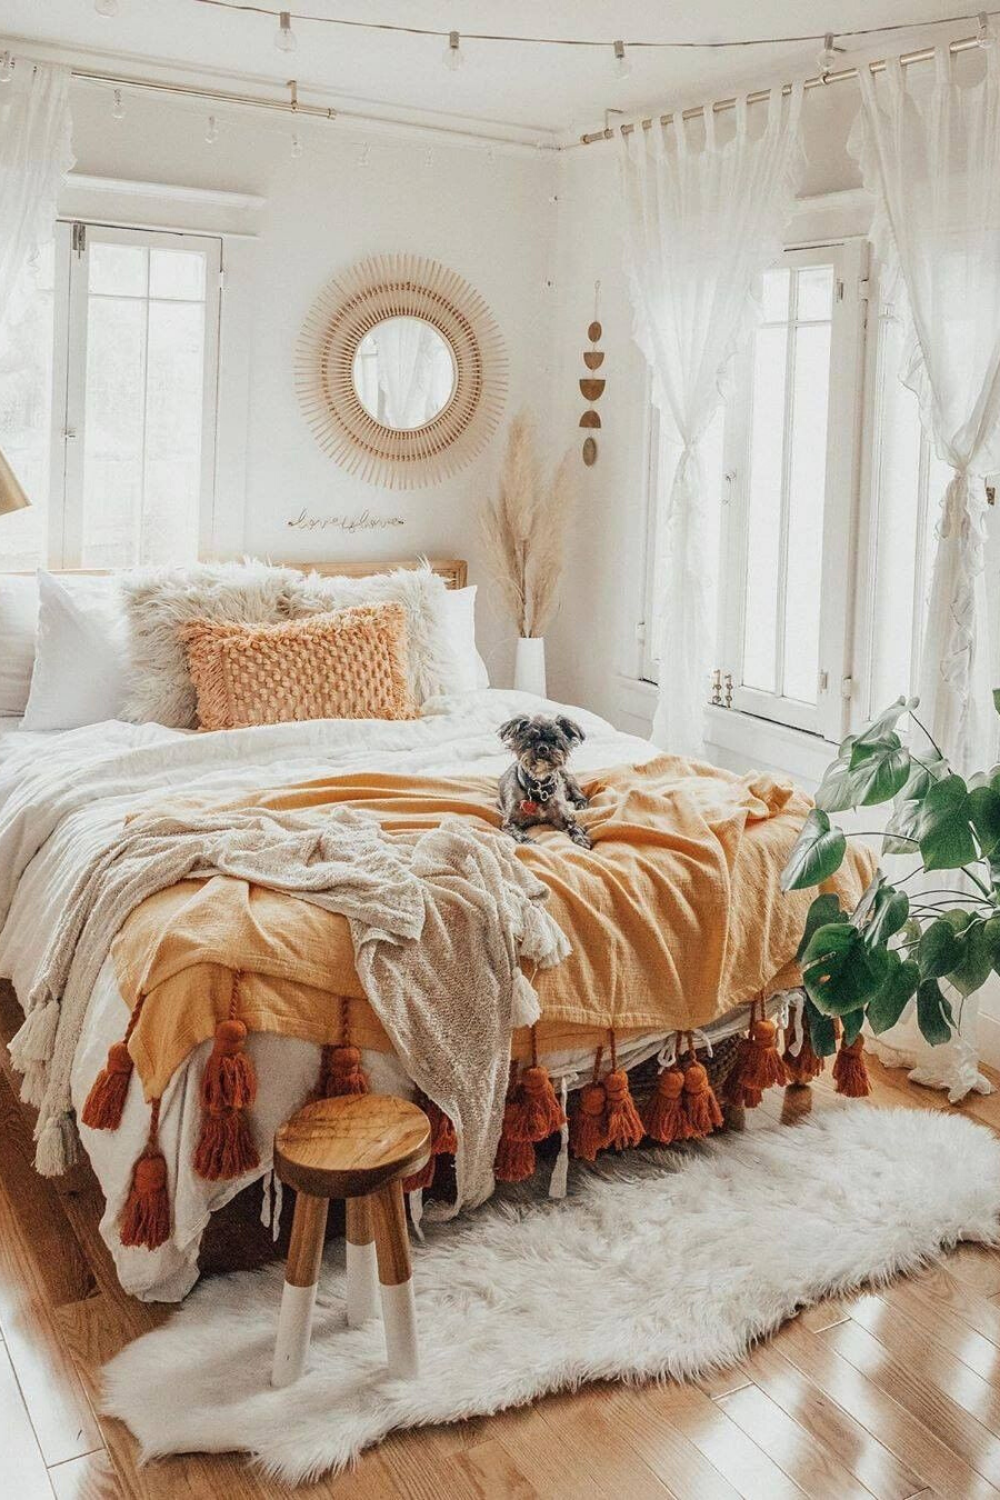 25 Most Instagrammable Bedroom Ideas In 2020 Bedroom Decor Design Bedroom Design Room Ideas Bedroom